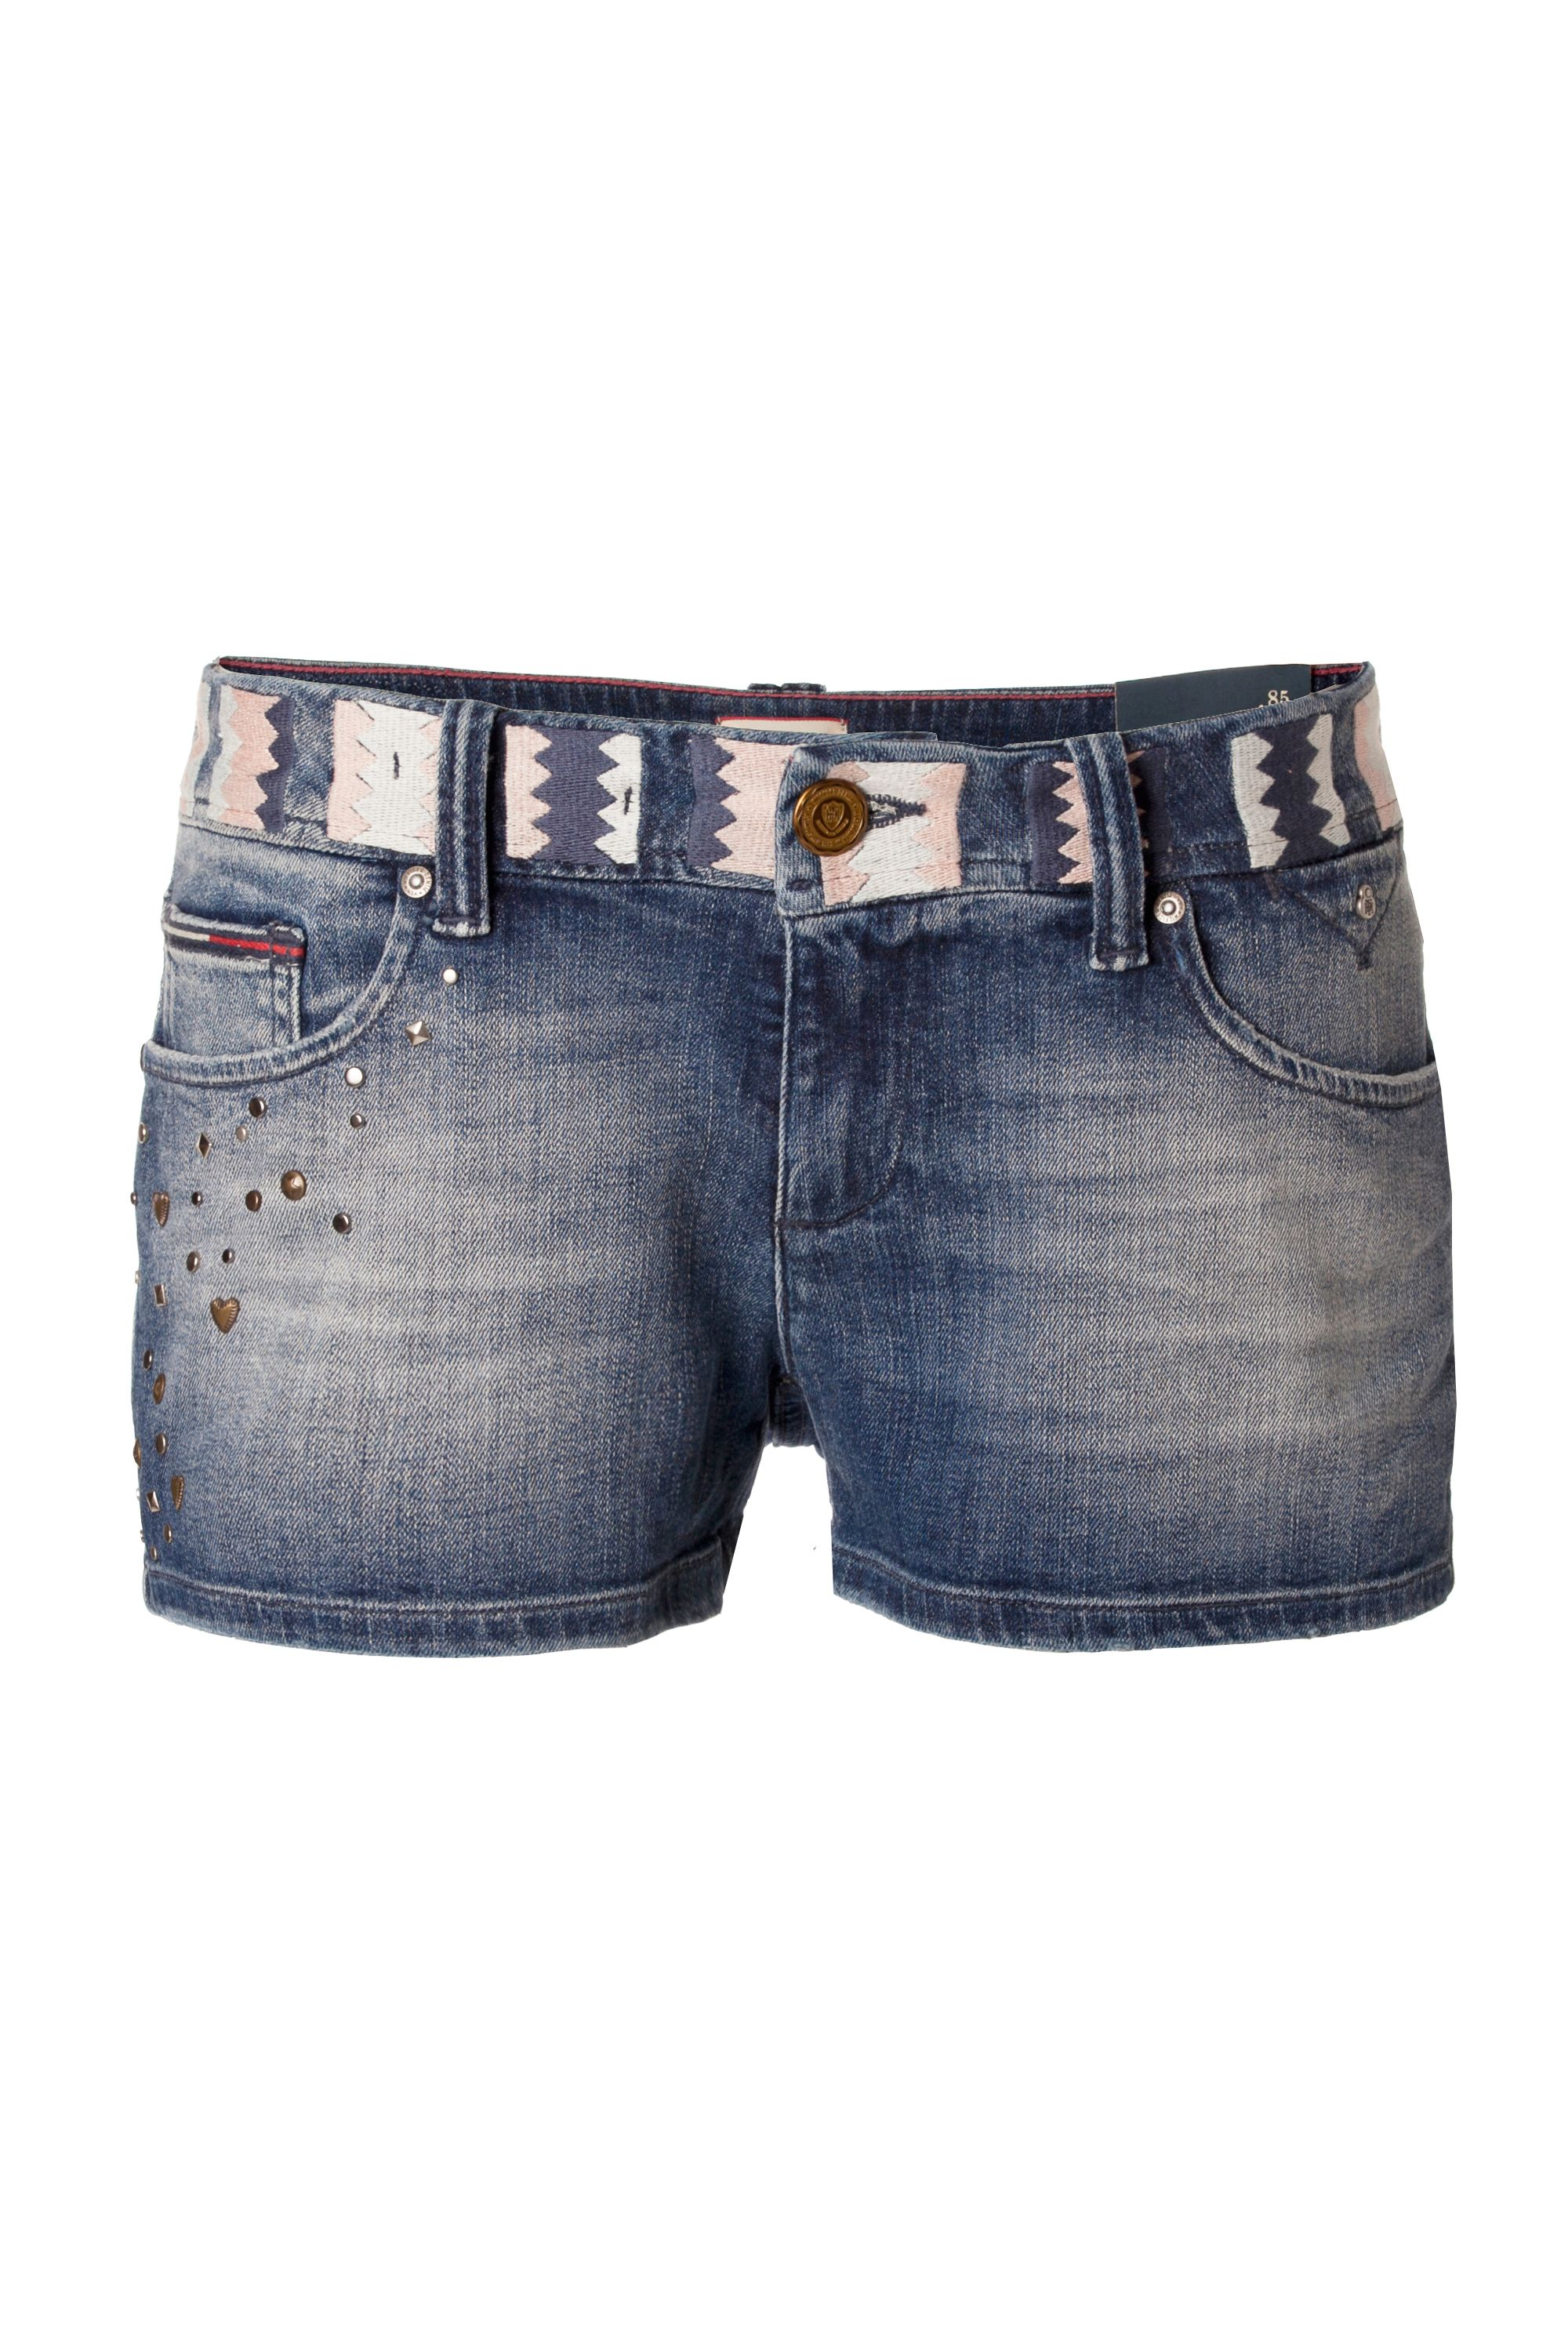 Rosie denim studded shorts